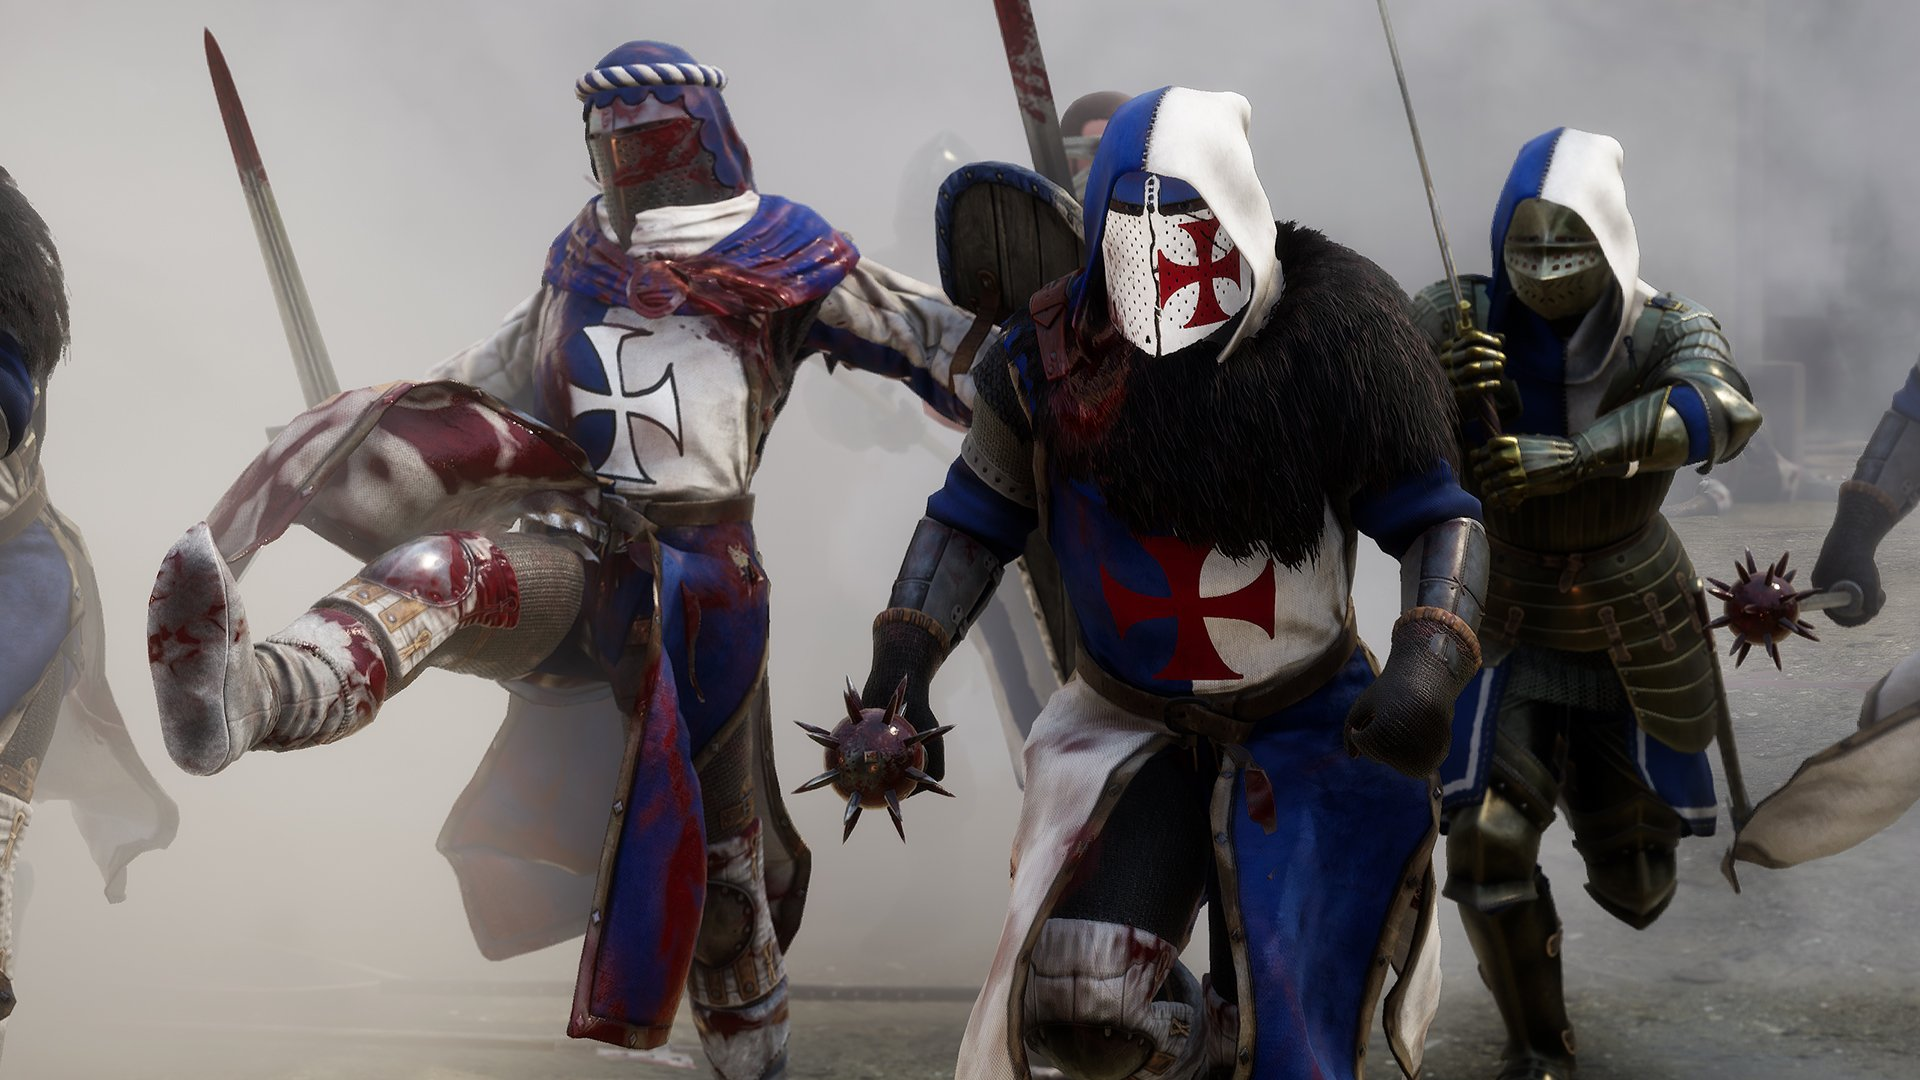 The player base of Mordhau feels like a close community, with the developers also making an effort to listen and implement feedback in Mordhau.